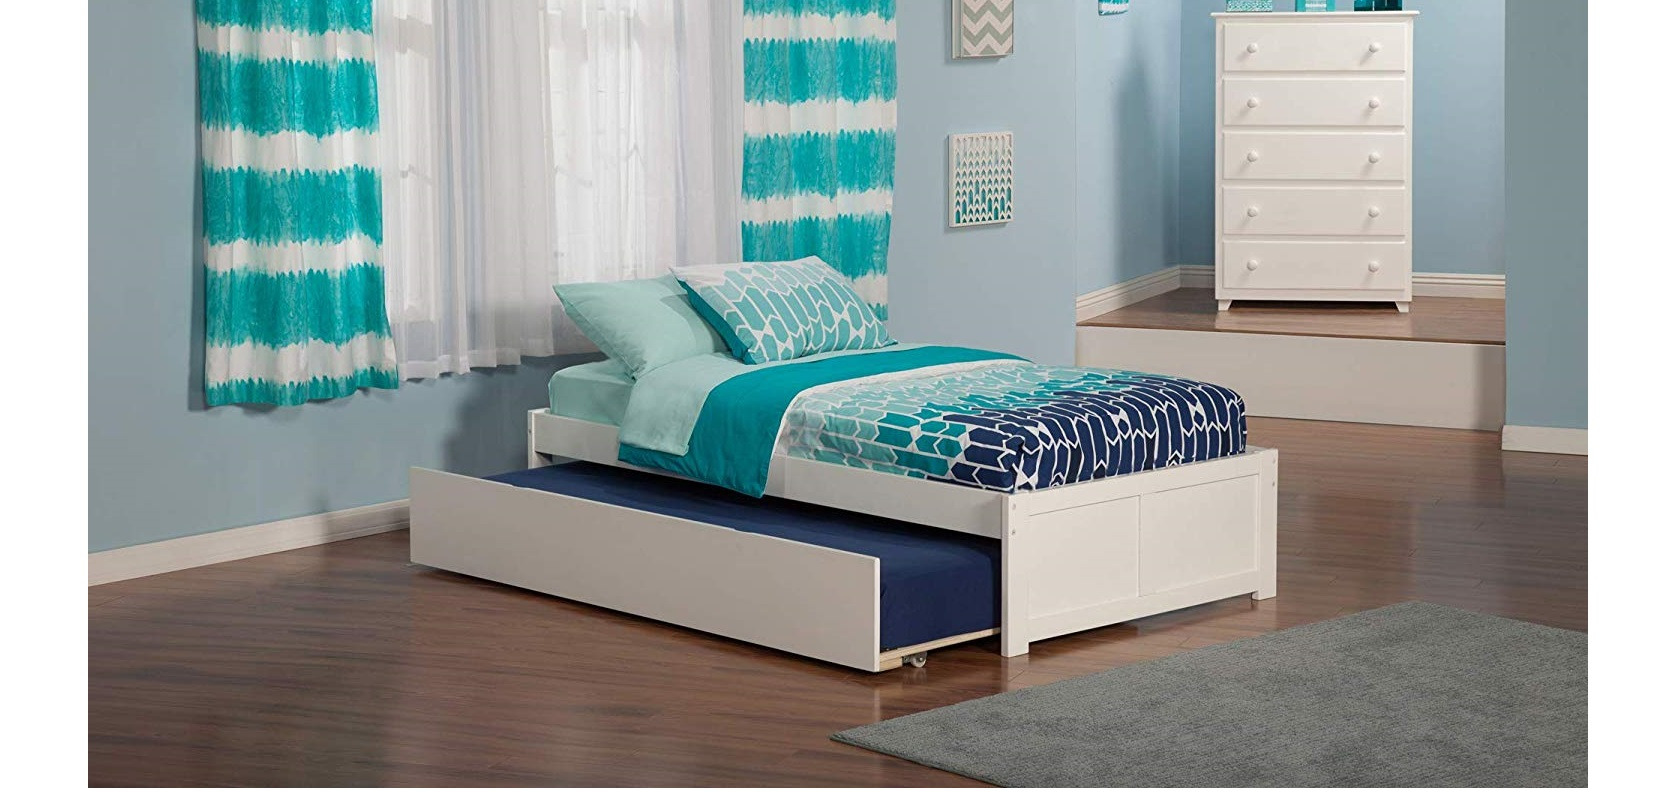 Top 5 Best Pop Up Trundle Beds in 2020 Reviews